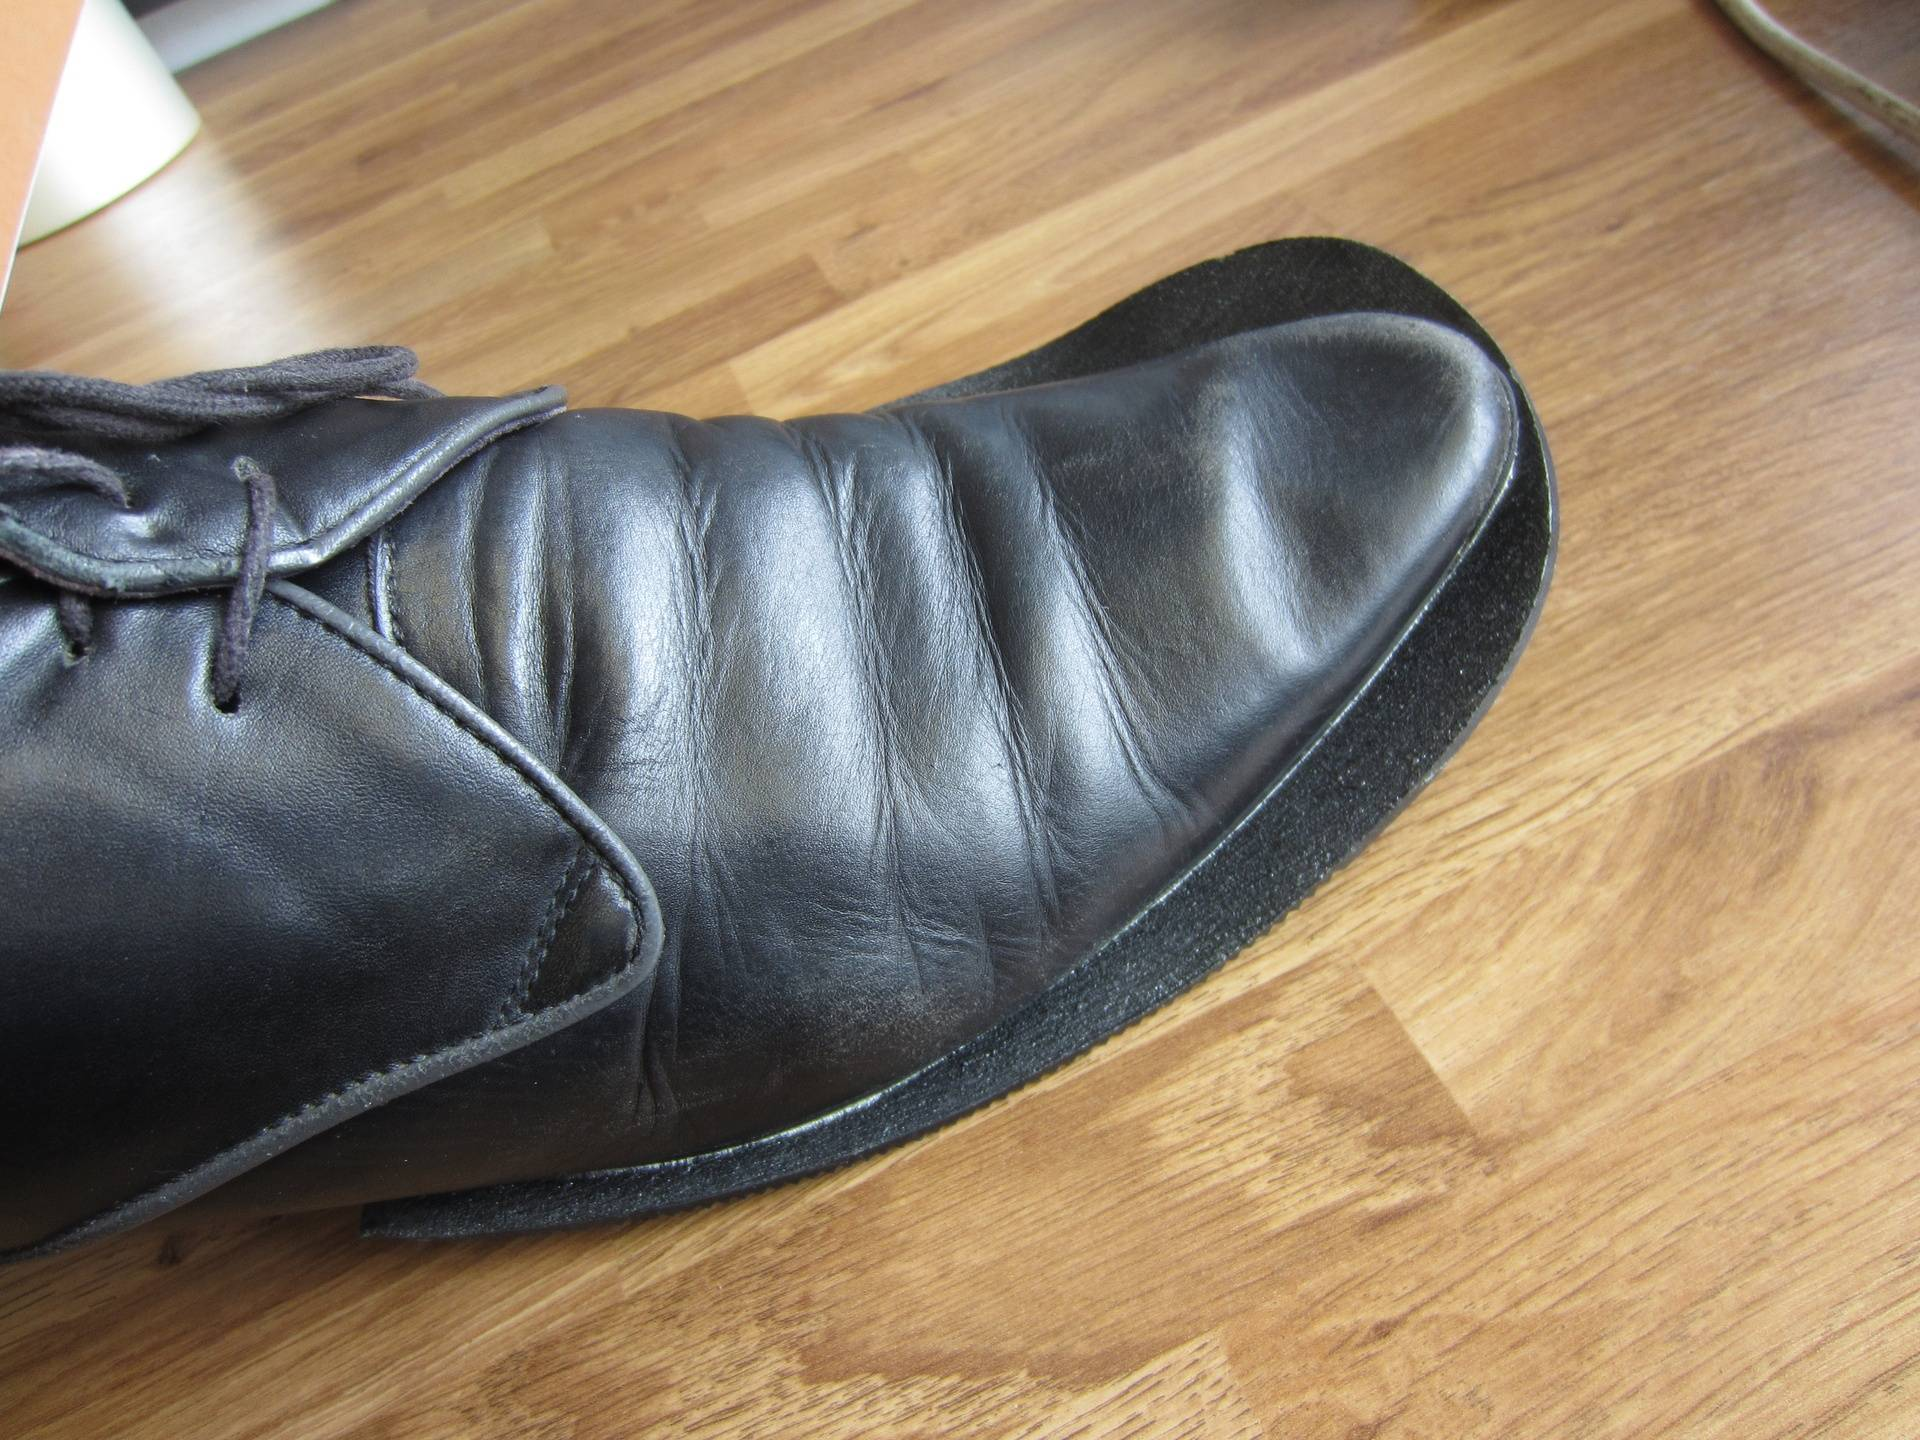 Press new soles on to shoes